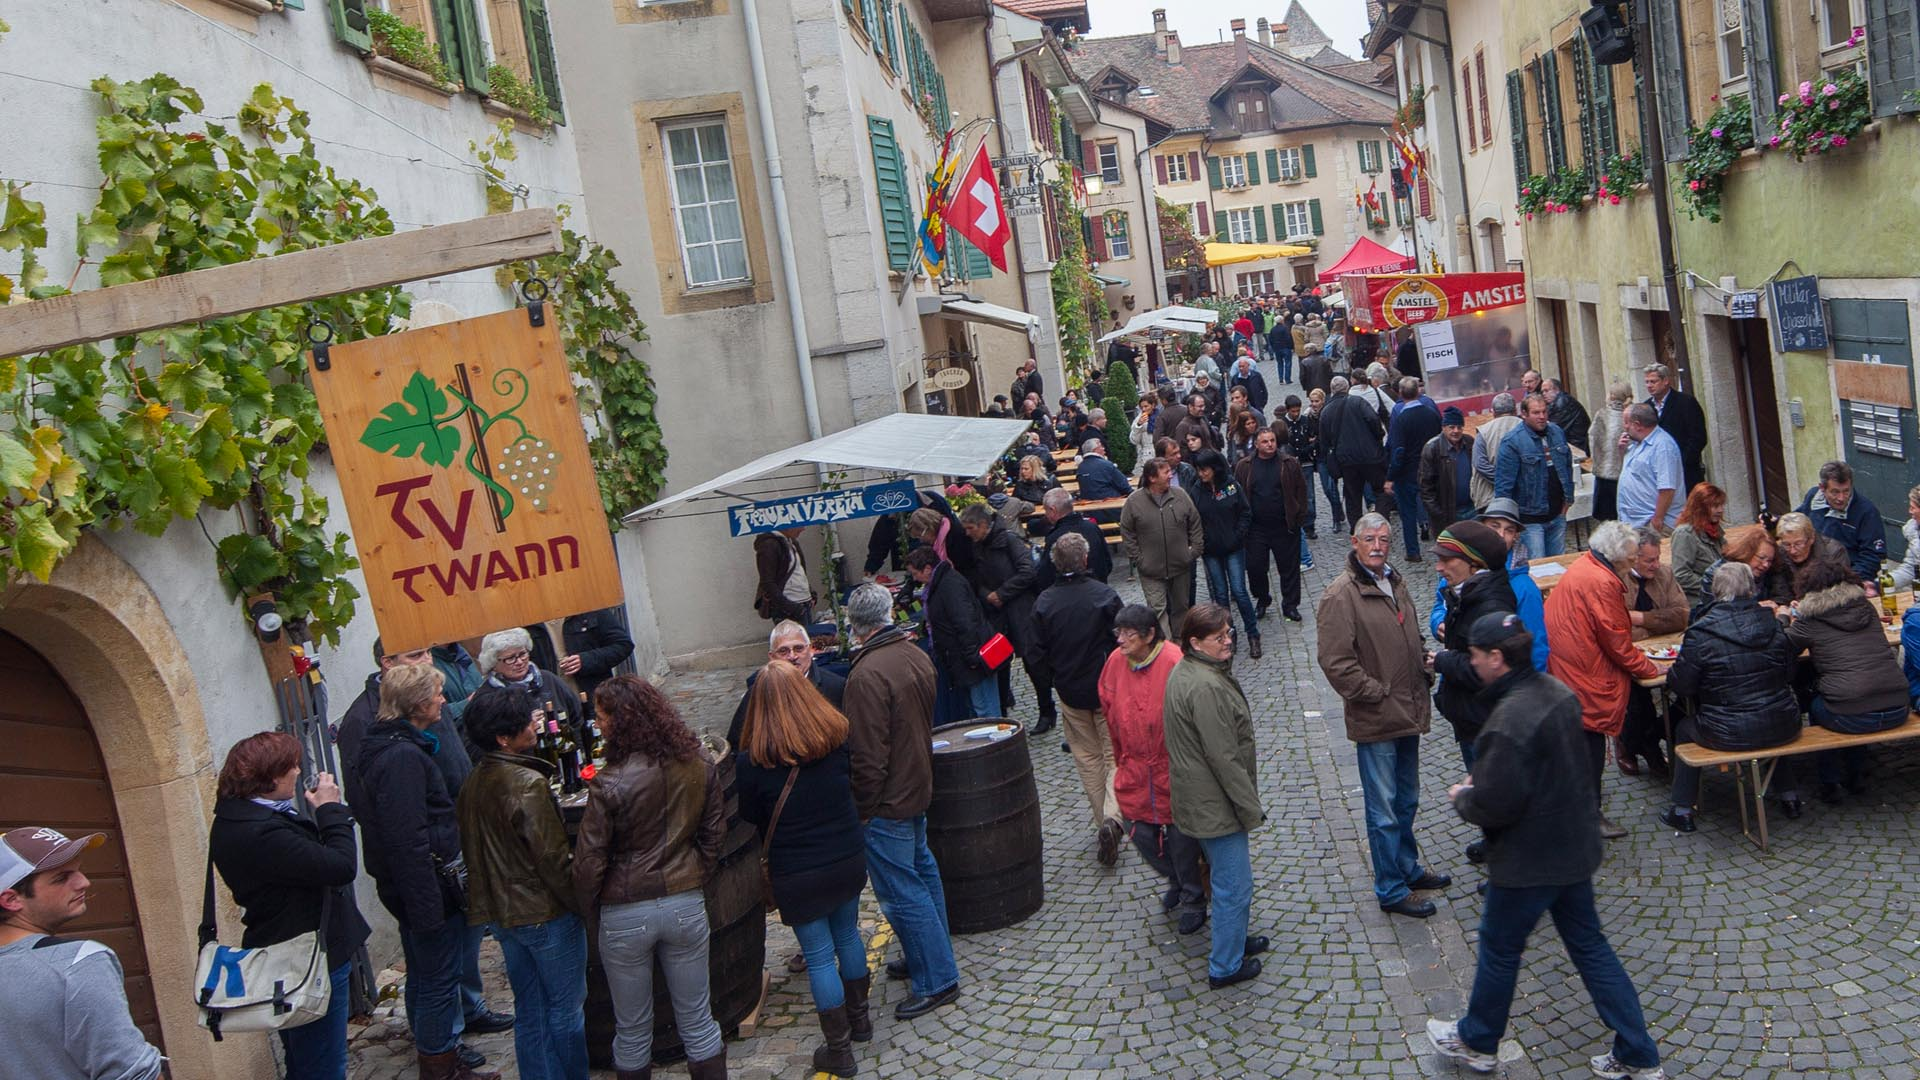 Weinfest am Bielersee in Twann - Truelete